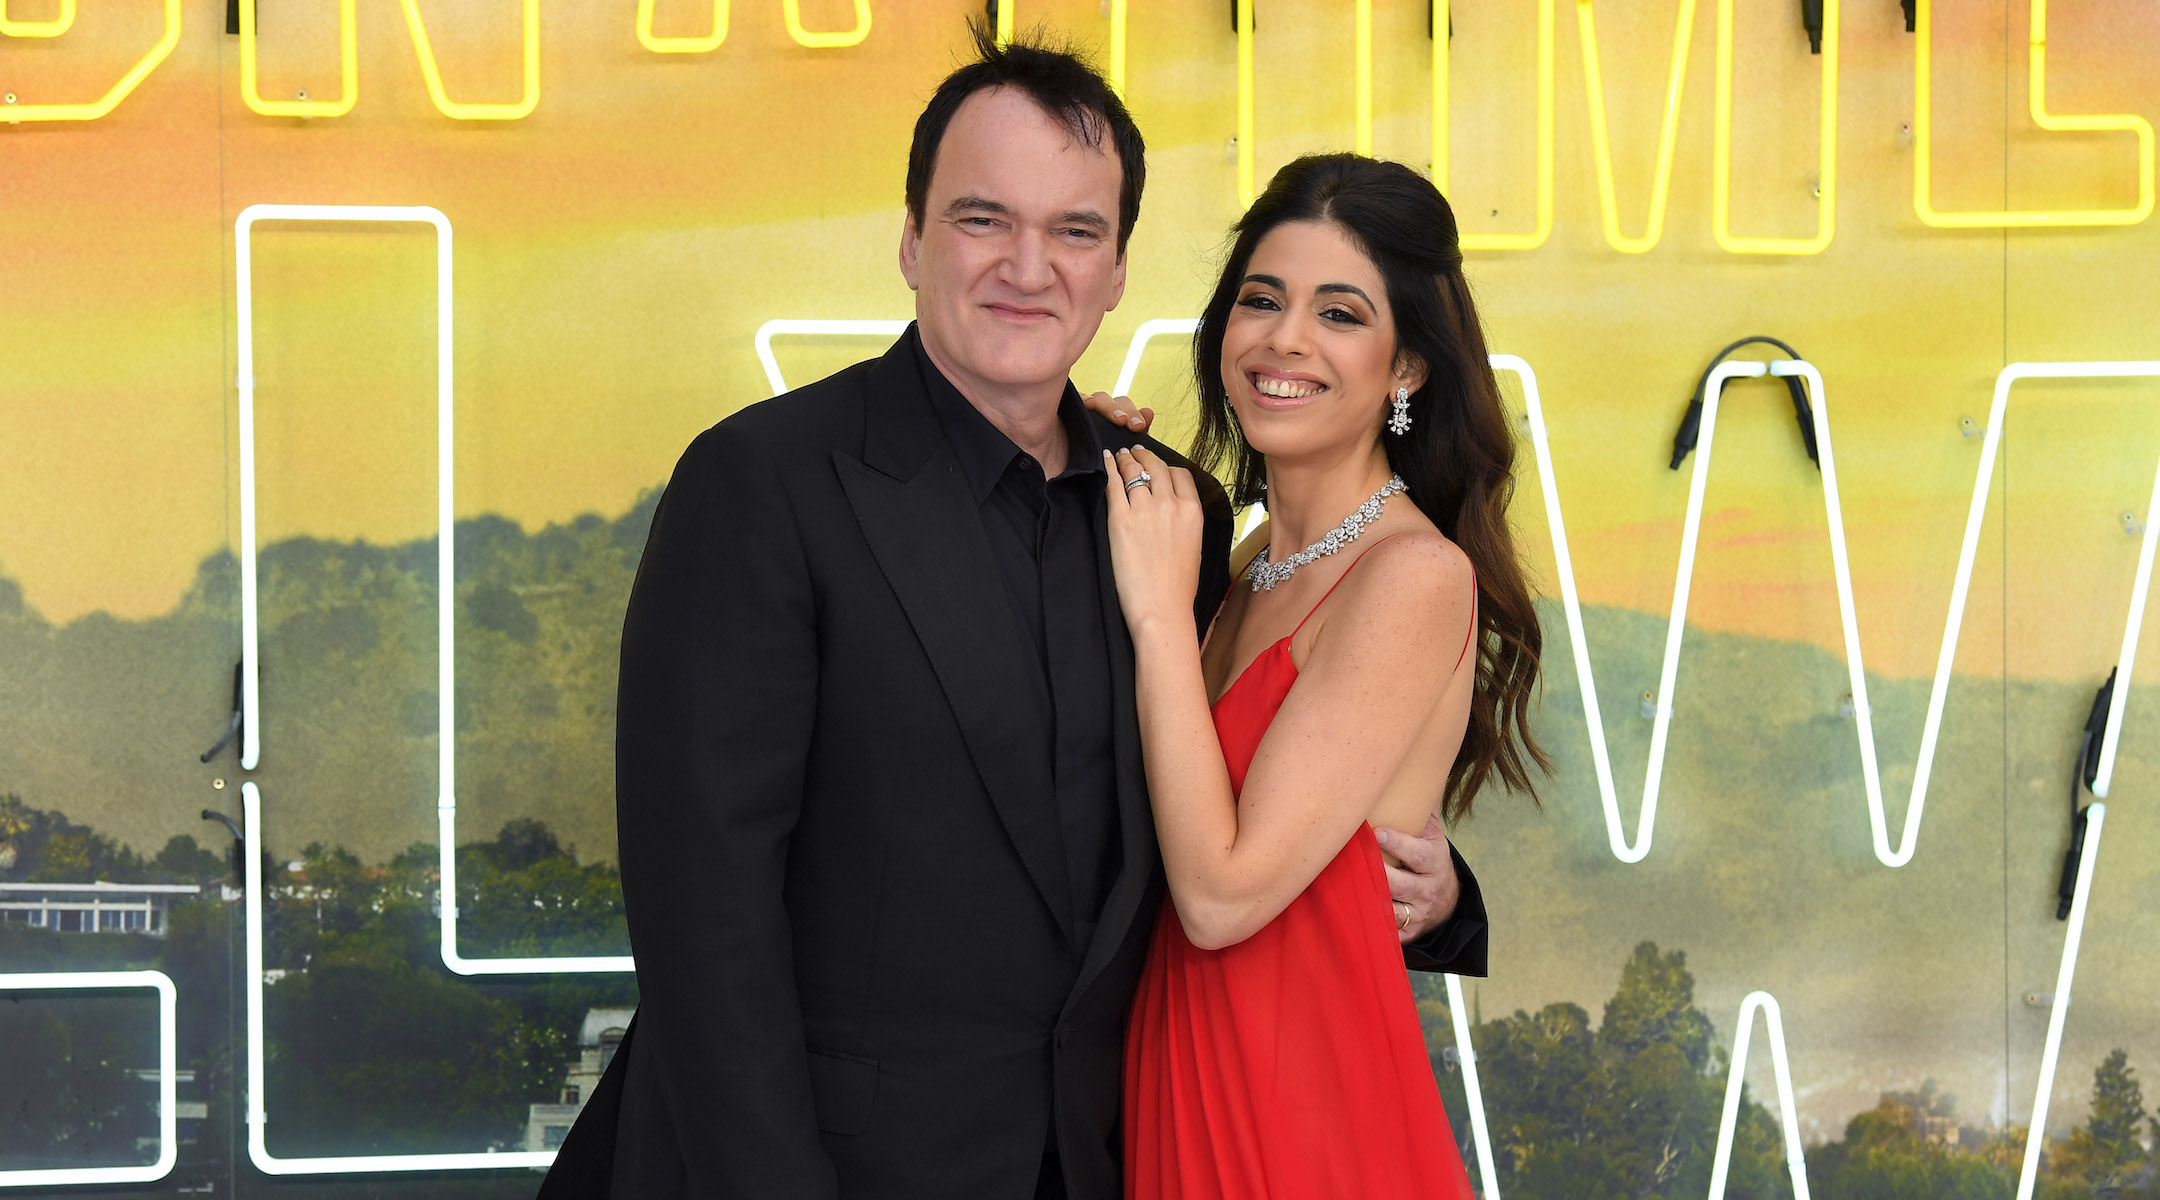 Quentin Tarantino's wife gives birth to couple's first child